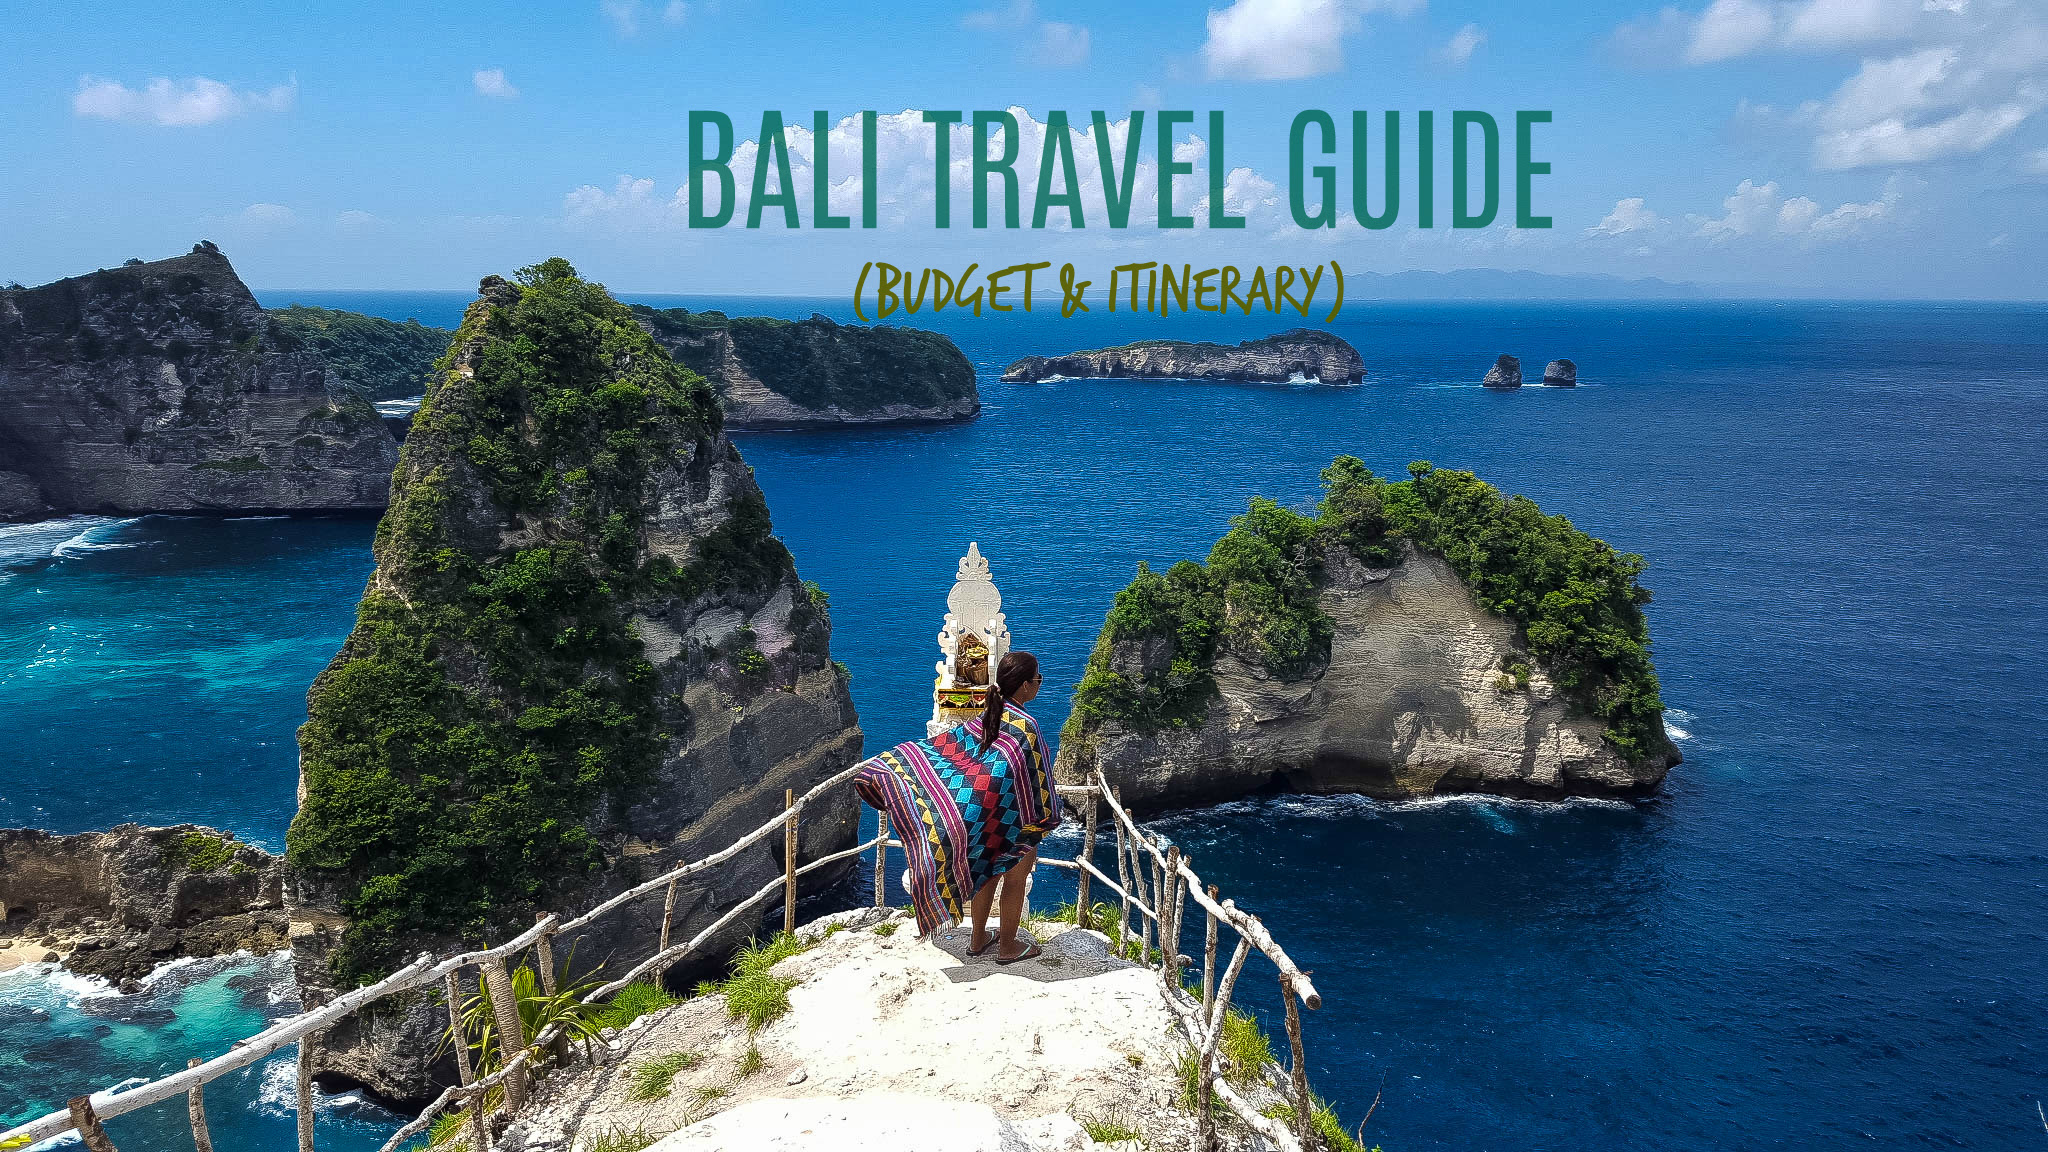 BALI TRAVEL GUIDE BLOG 2017 (ITINERARY + BUDGET) - The ...